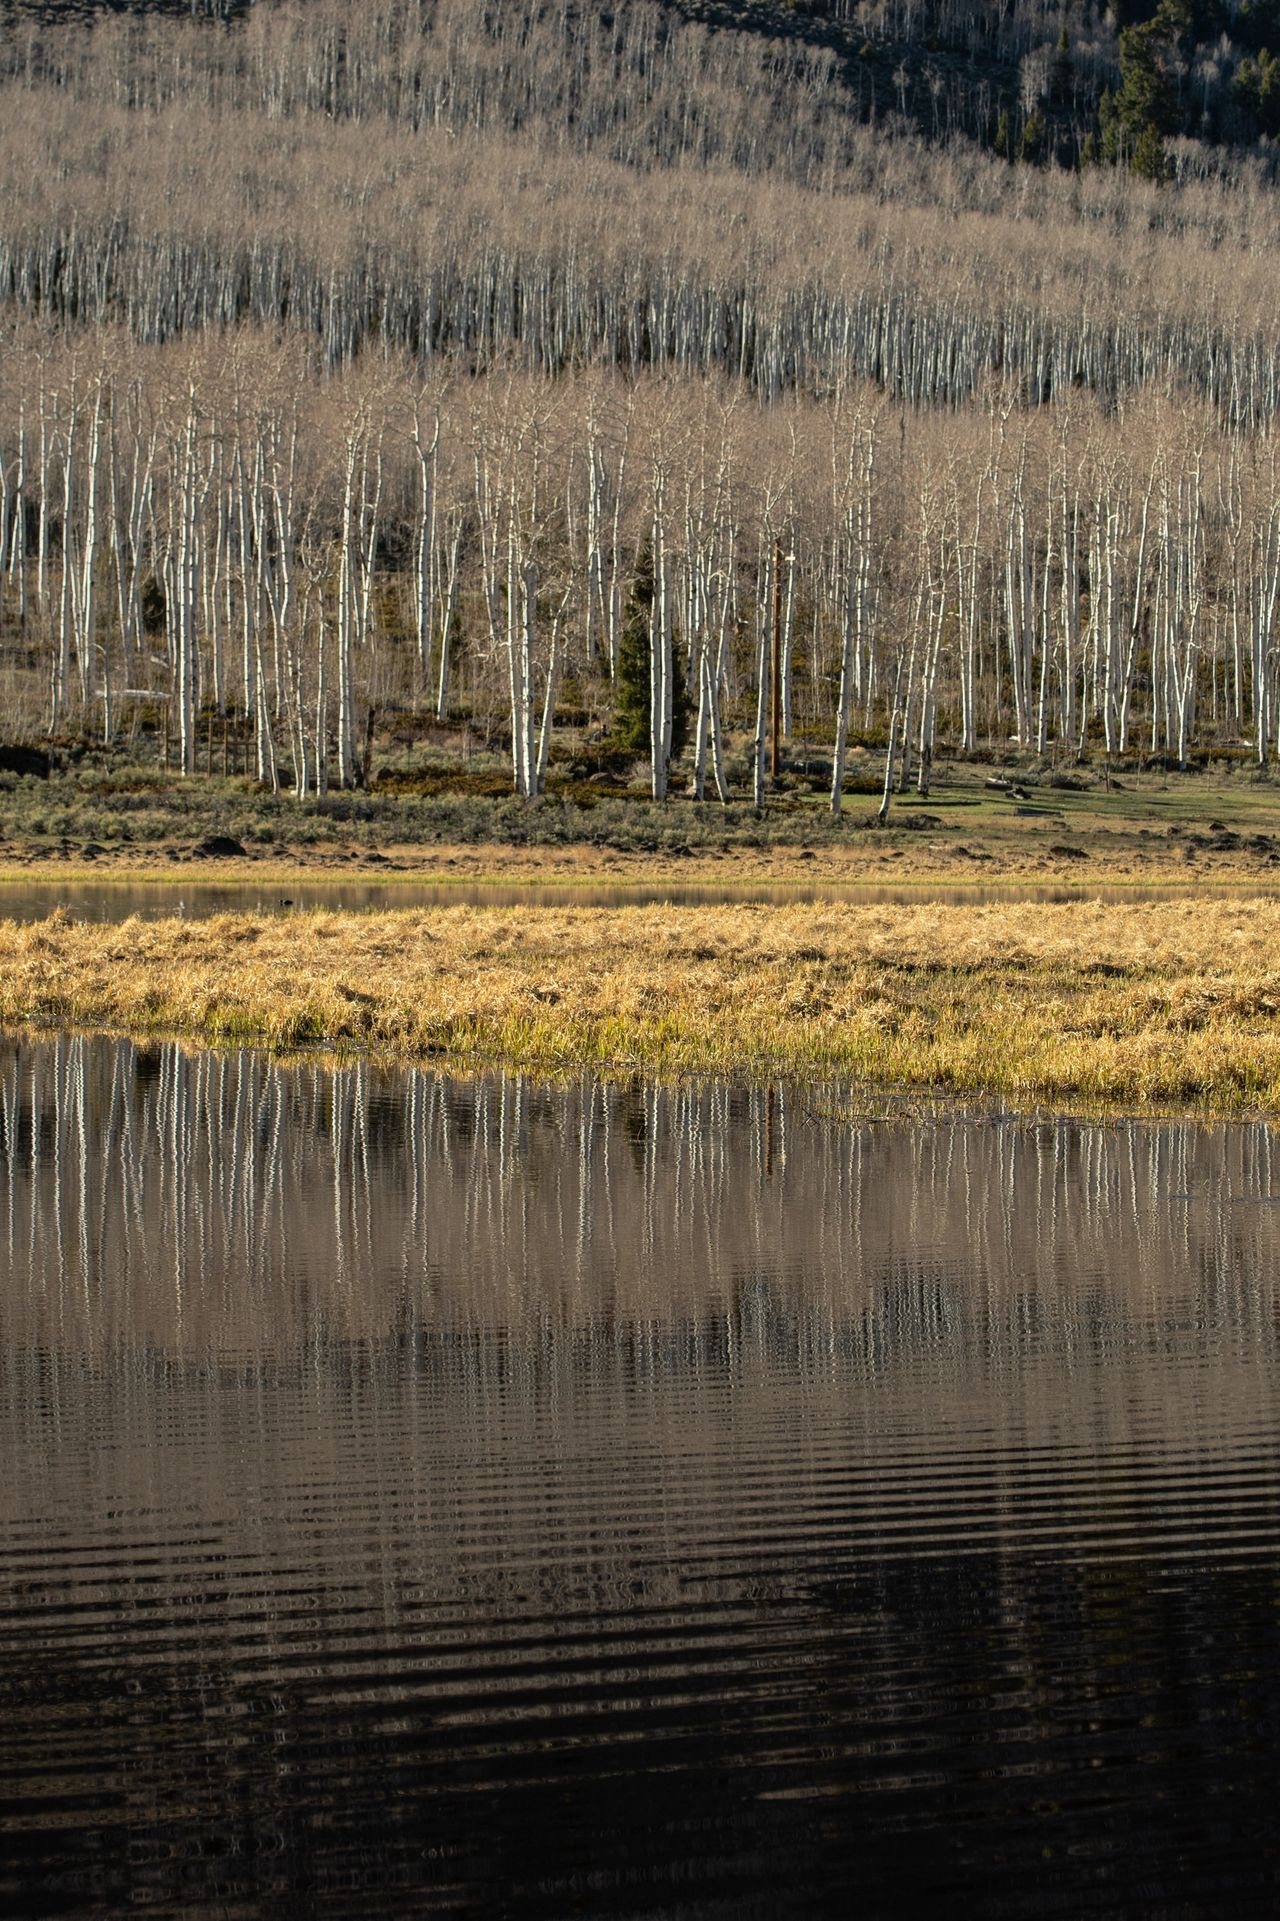 Meeting Pando - View of Pando from Coot Slough